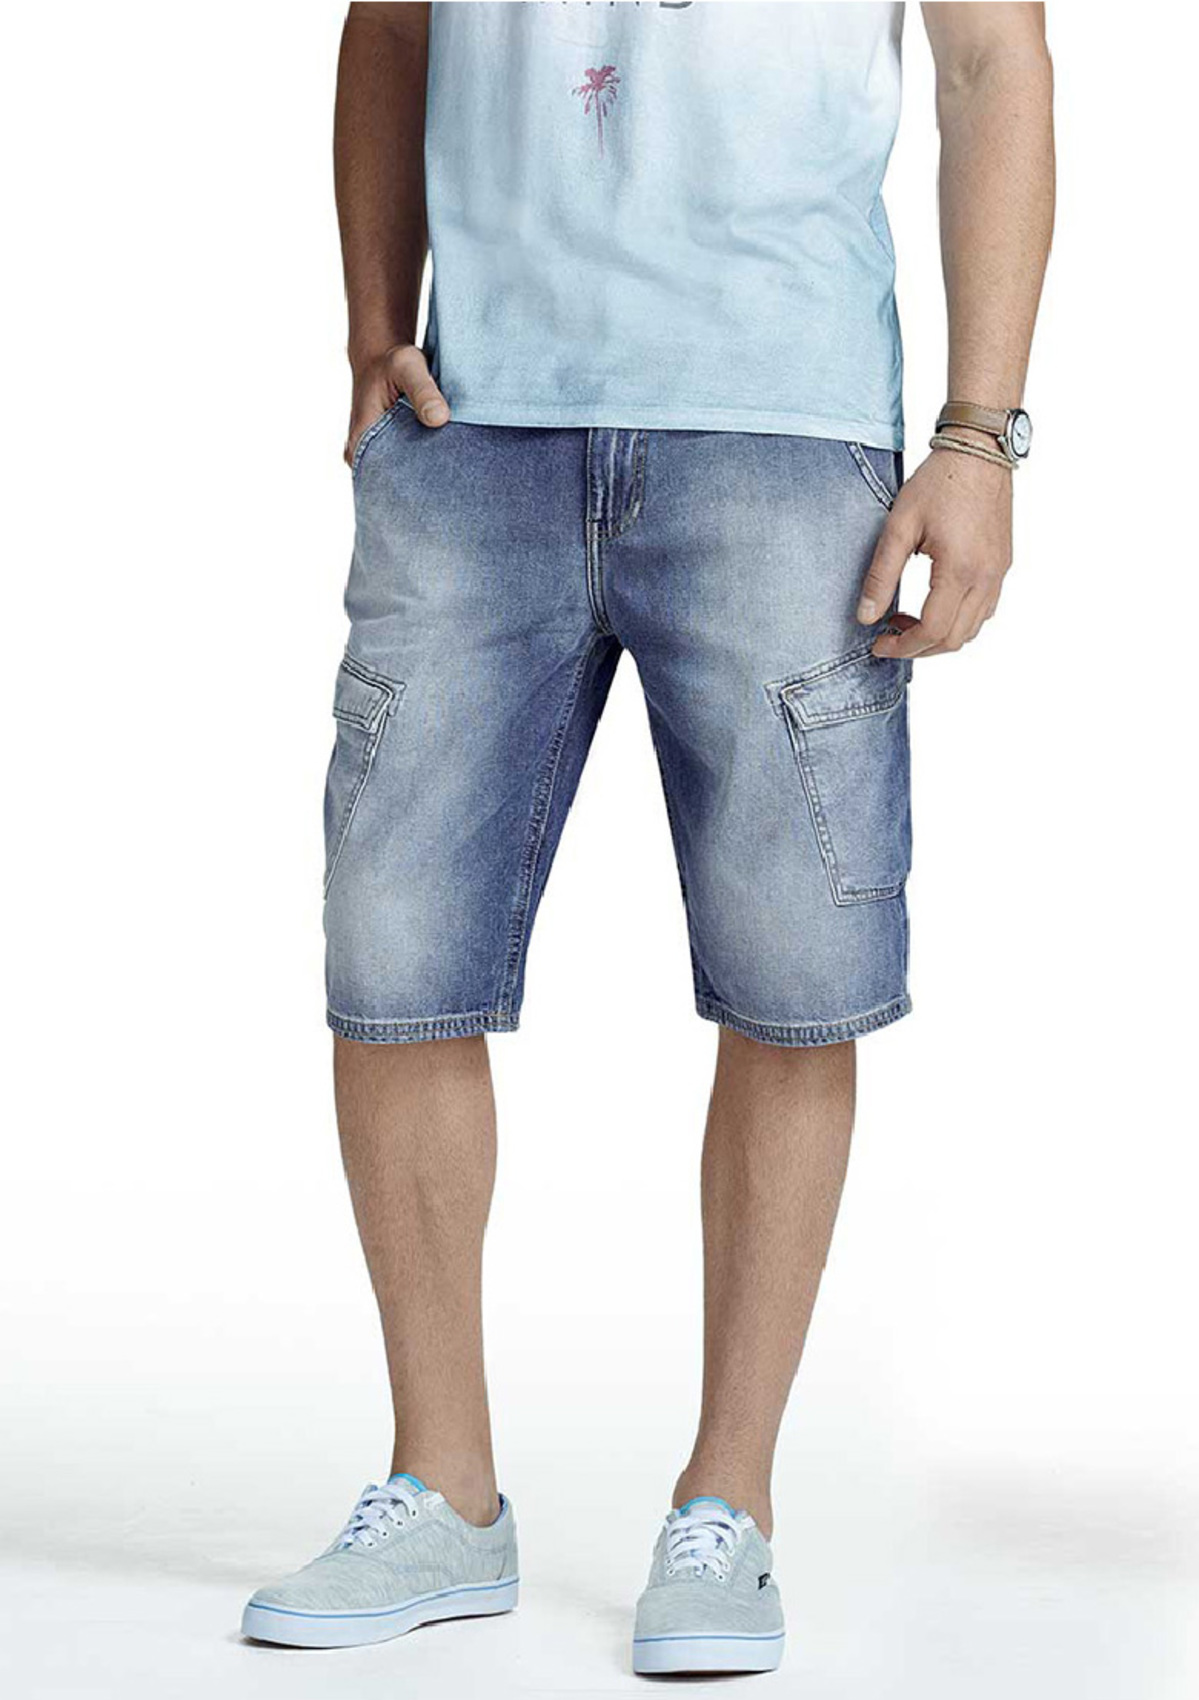 5844f1d36b Bermuda masculina hering tipo cargo em jeans na Hering